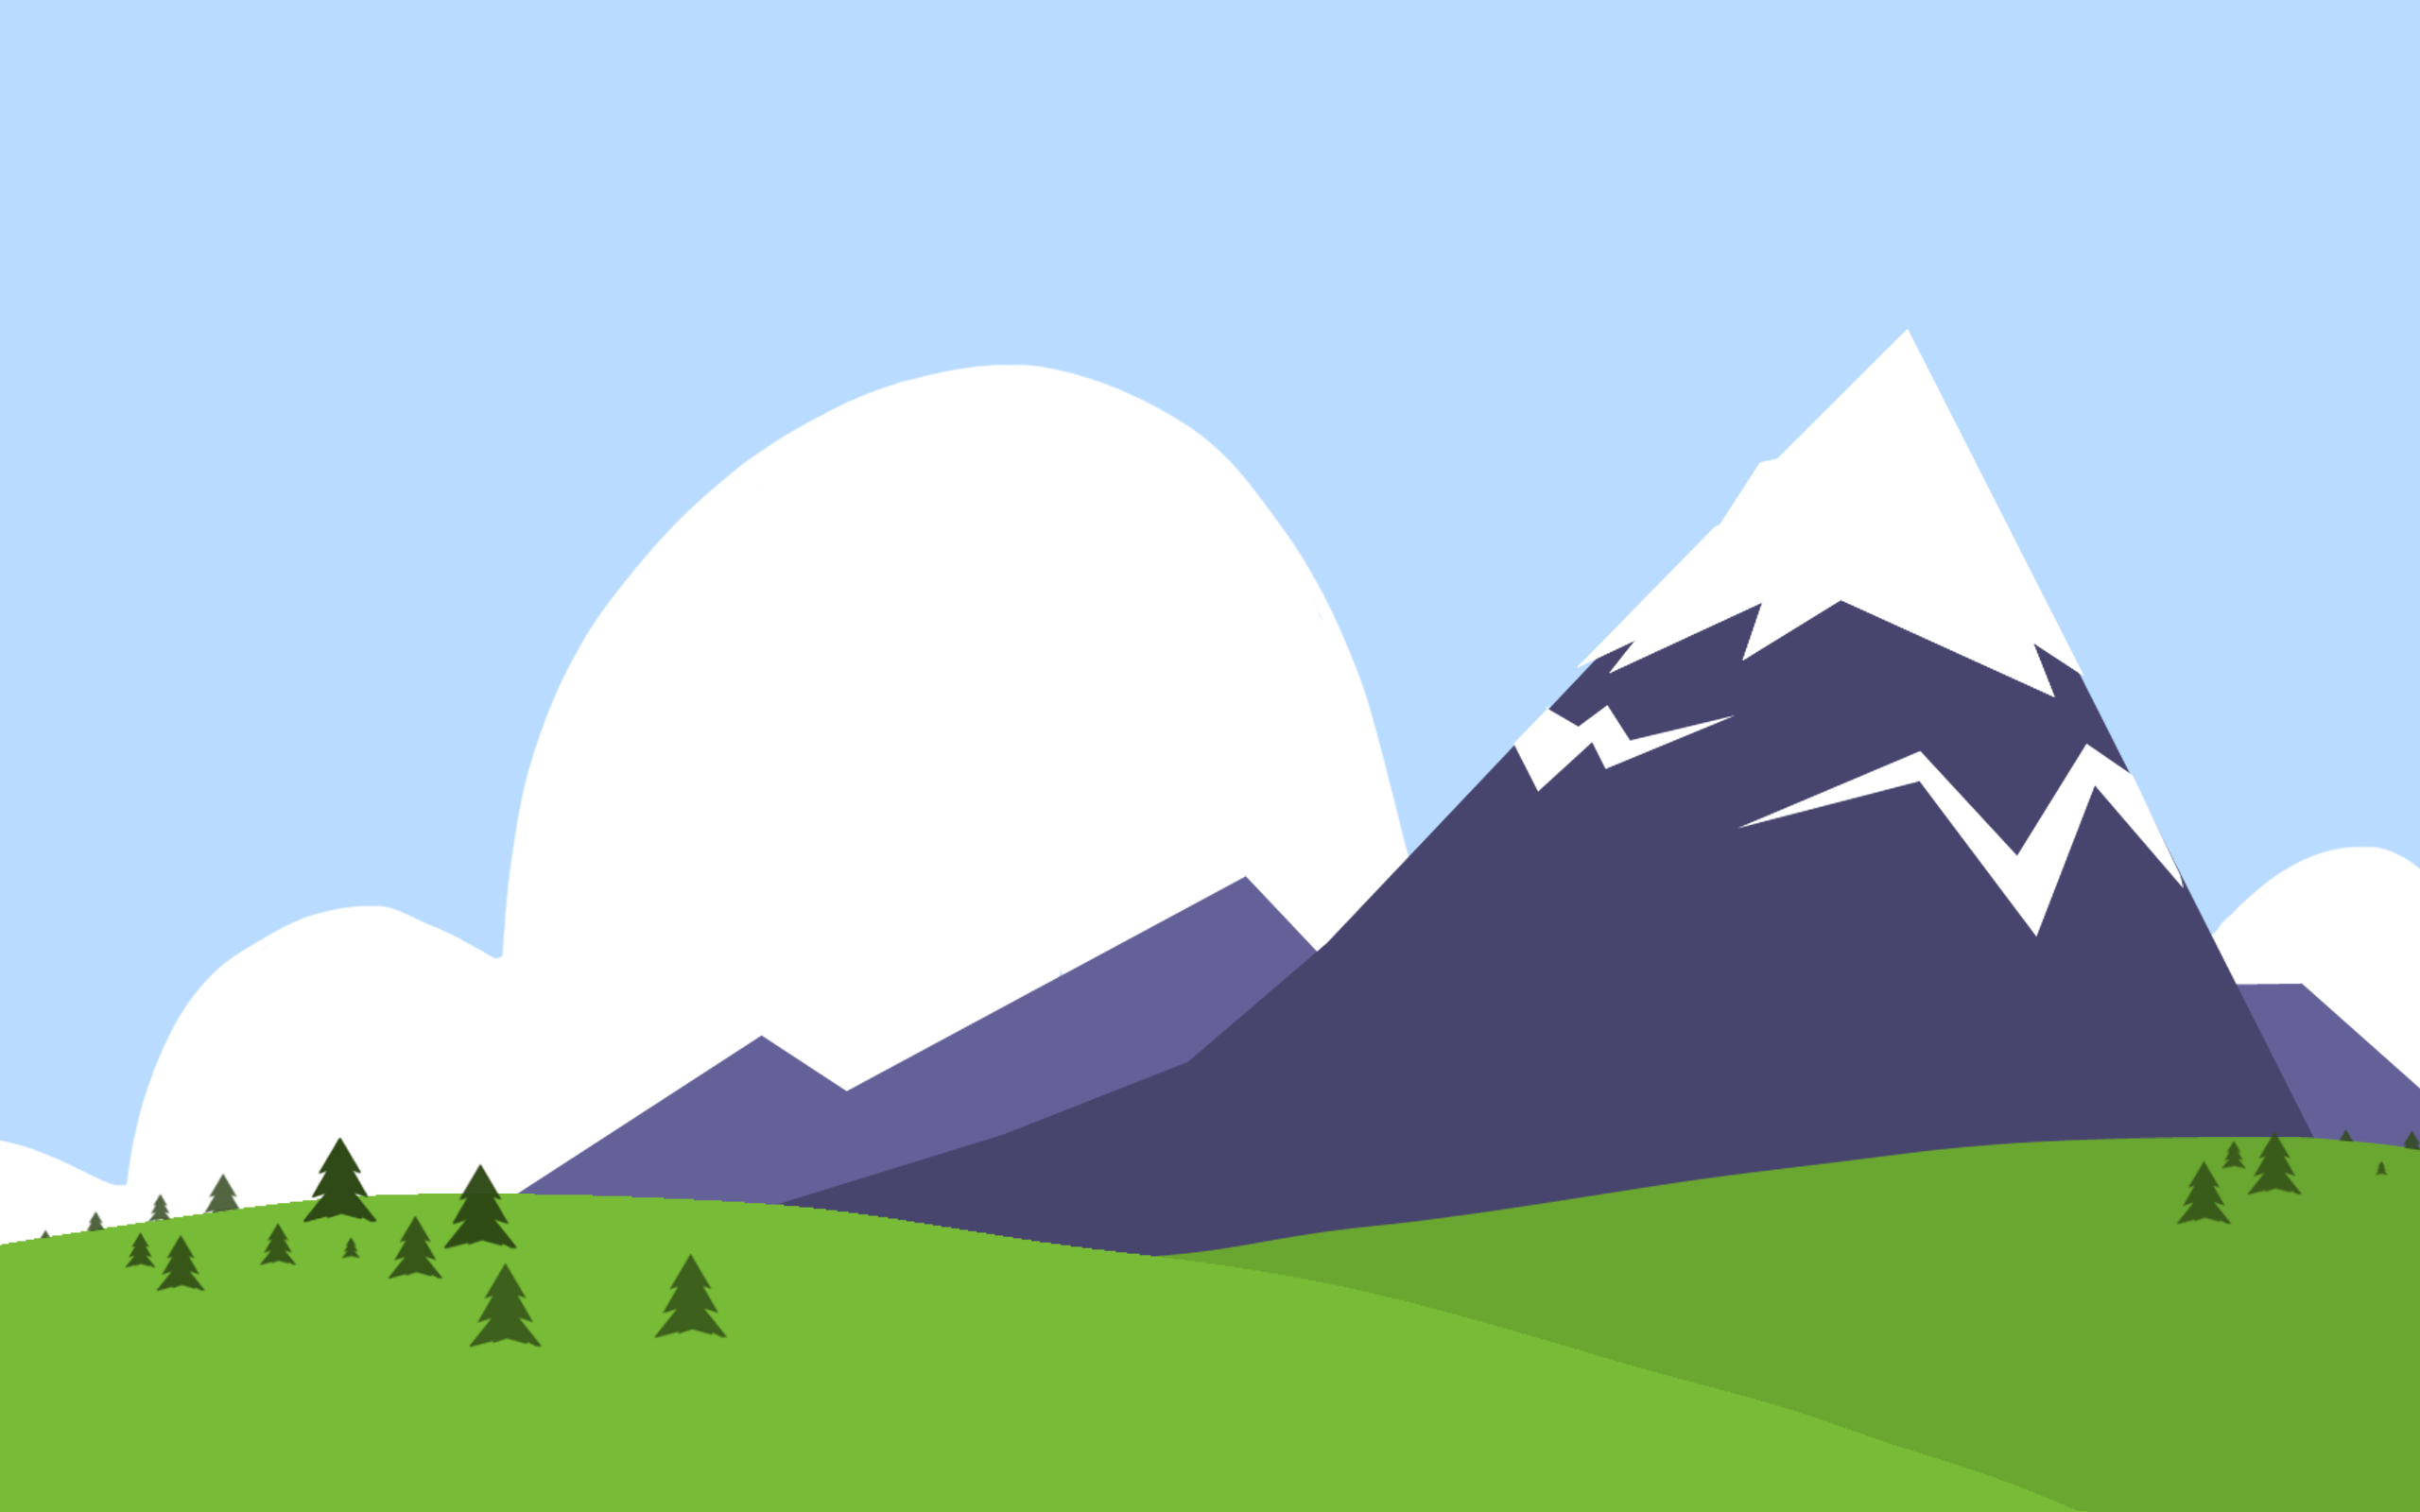 Lake clipart mountain wallpaper. And forest powerpoint backgrounds